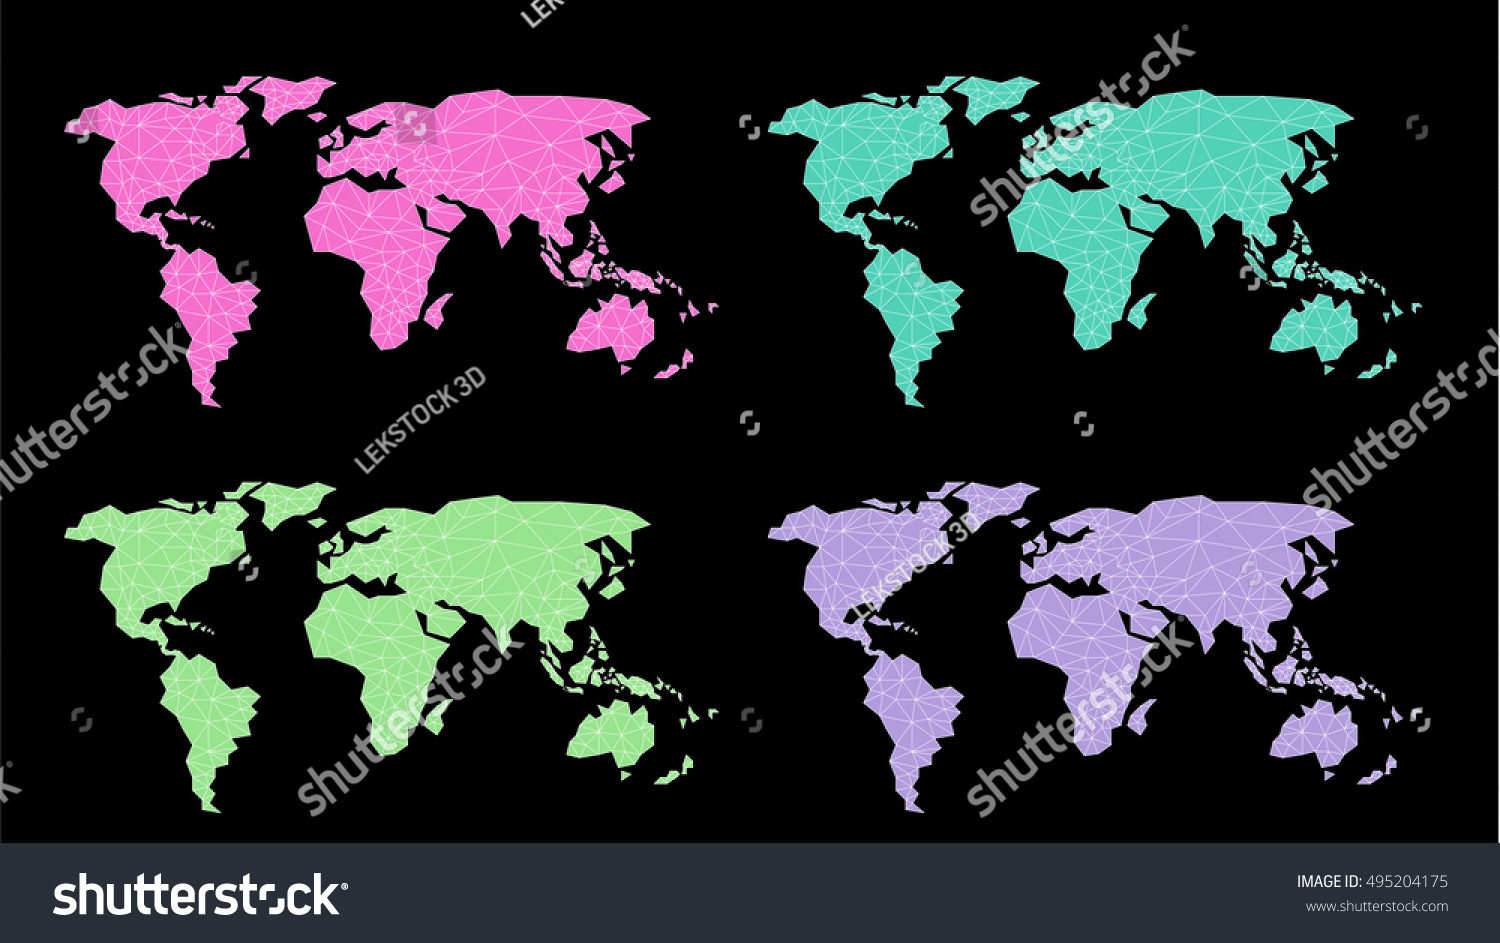 Polygonal abstract world map triangle line stock vector 2018 polygonal abstract world map triangle line stel colorvector illustation gumiabroncs Gallery